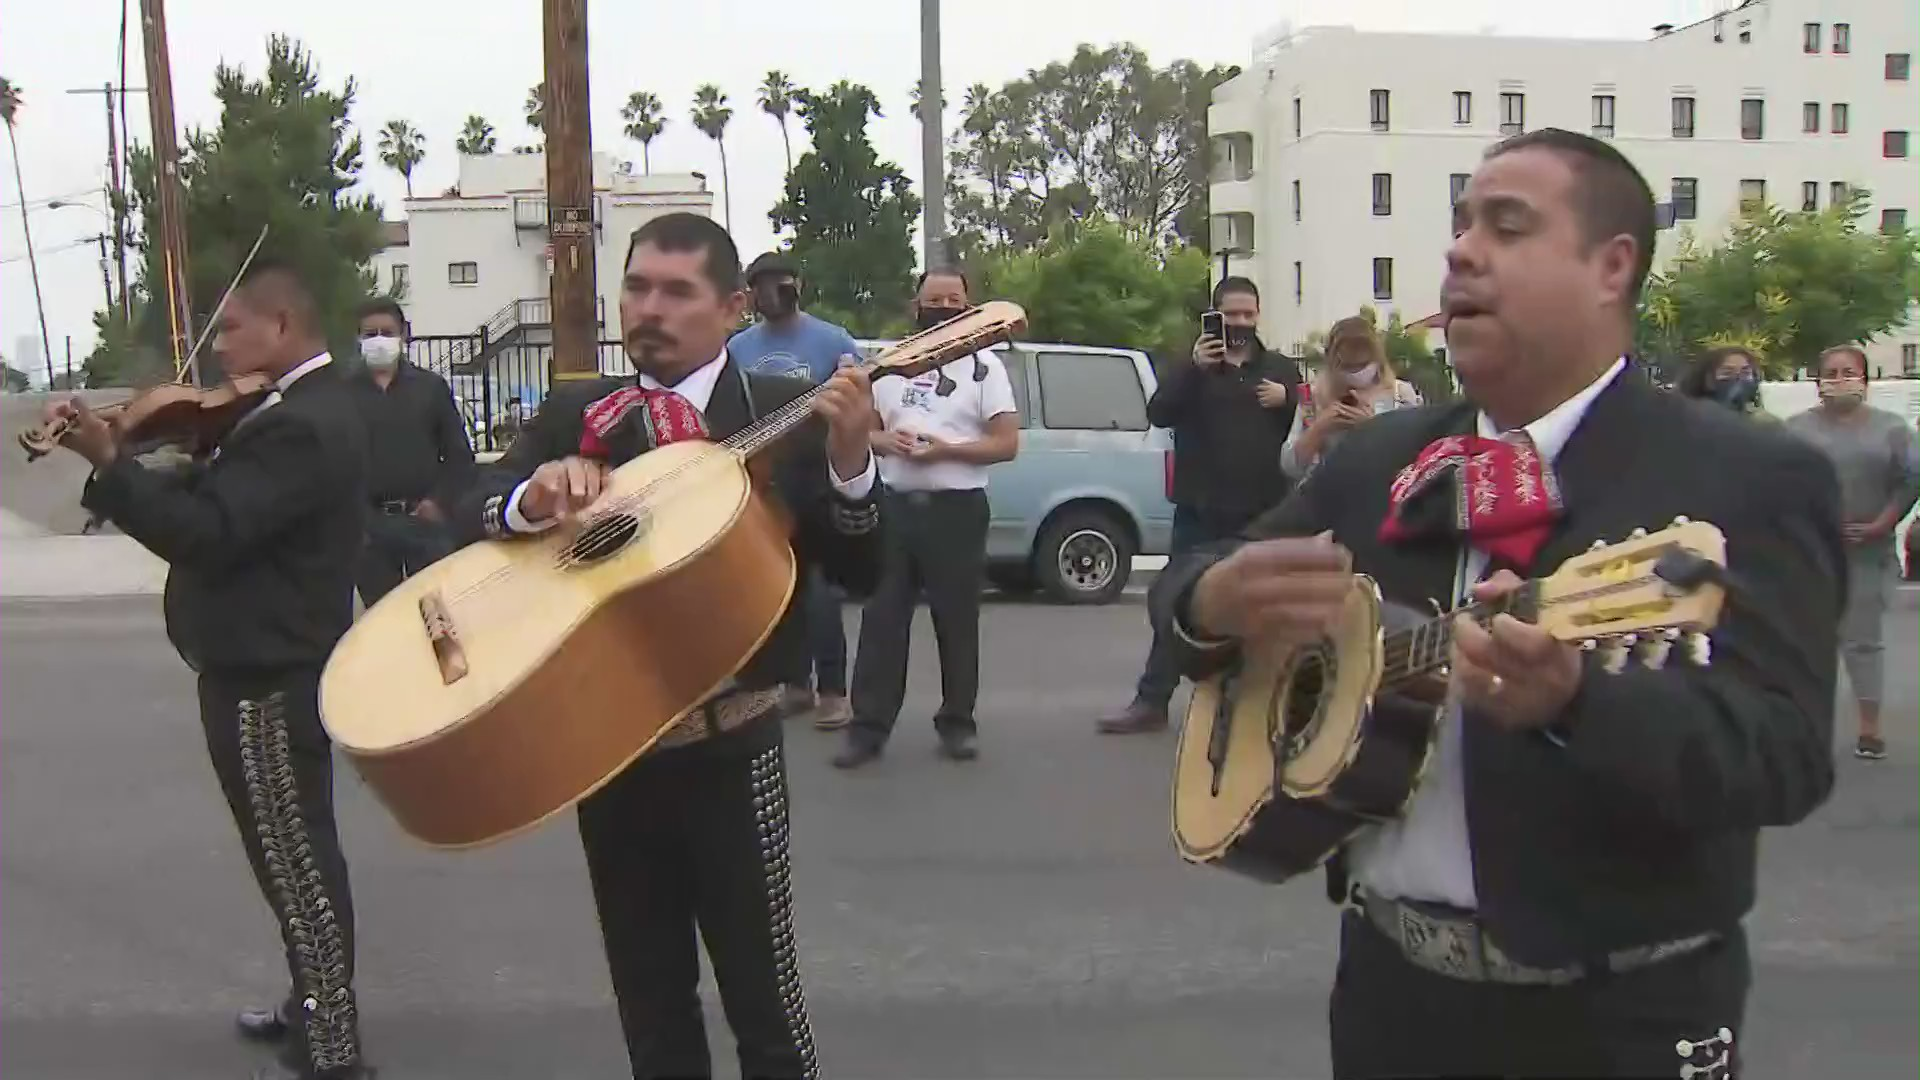 A mariachi performs in Boyle Heights on June 21, 2020. (KTLA)